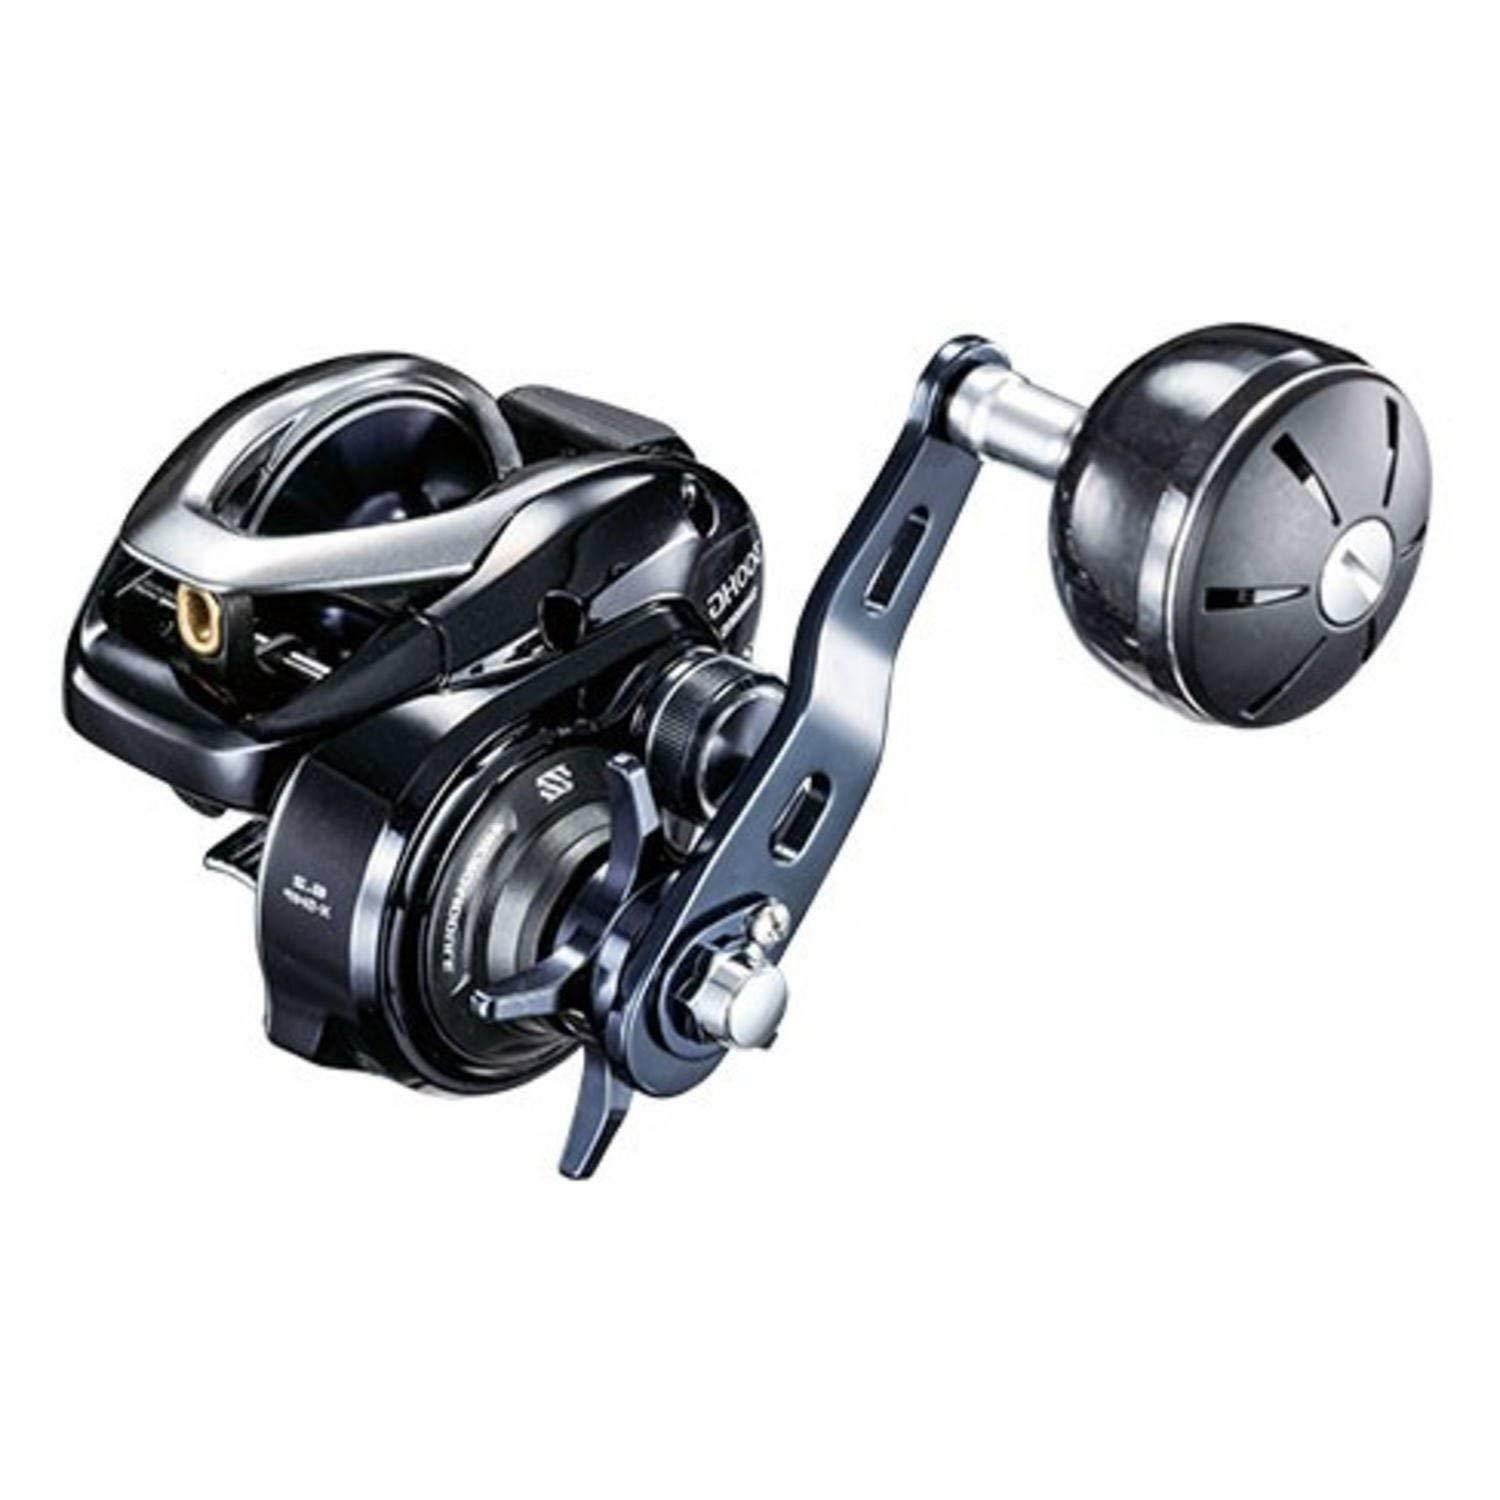 Shimano Baitkasting Rulle 17 Grappler 301HG Vänster från Japan [Brand Ny i ask]